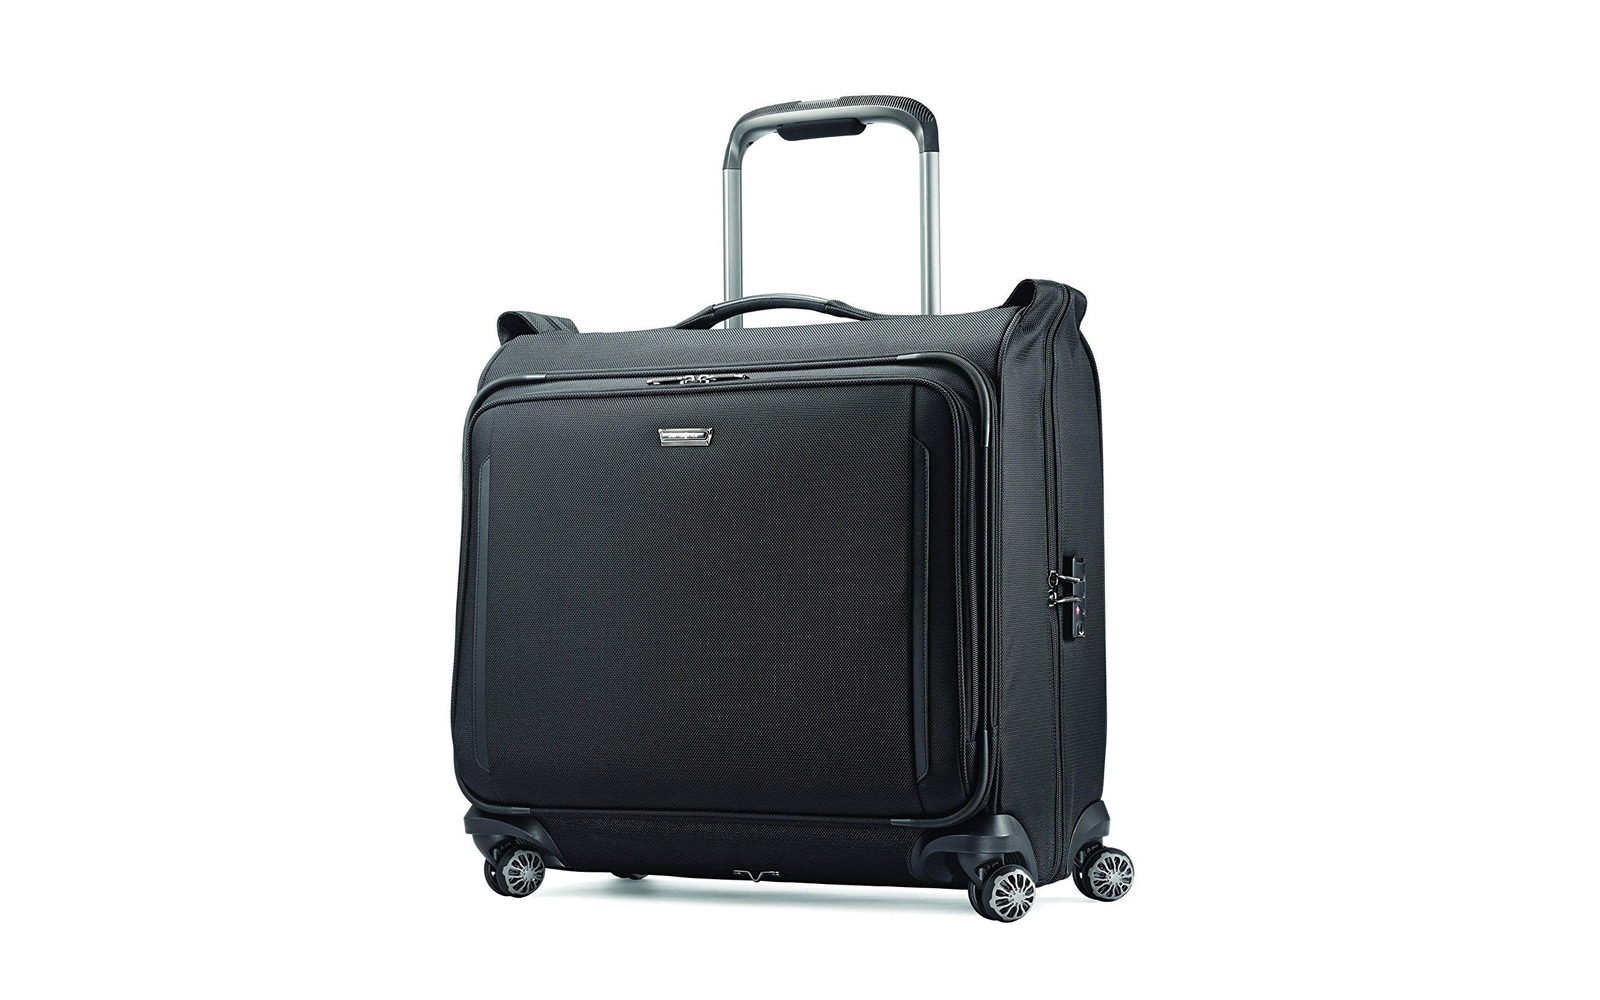 ba7ea8505 Samsonite Silhouette Softside Deluxe Voyager Garment Bag